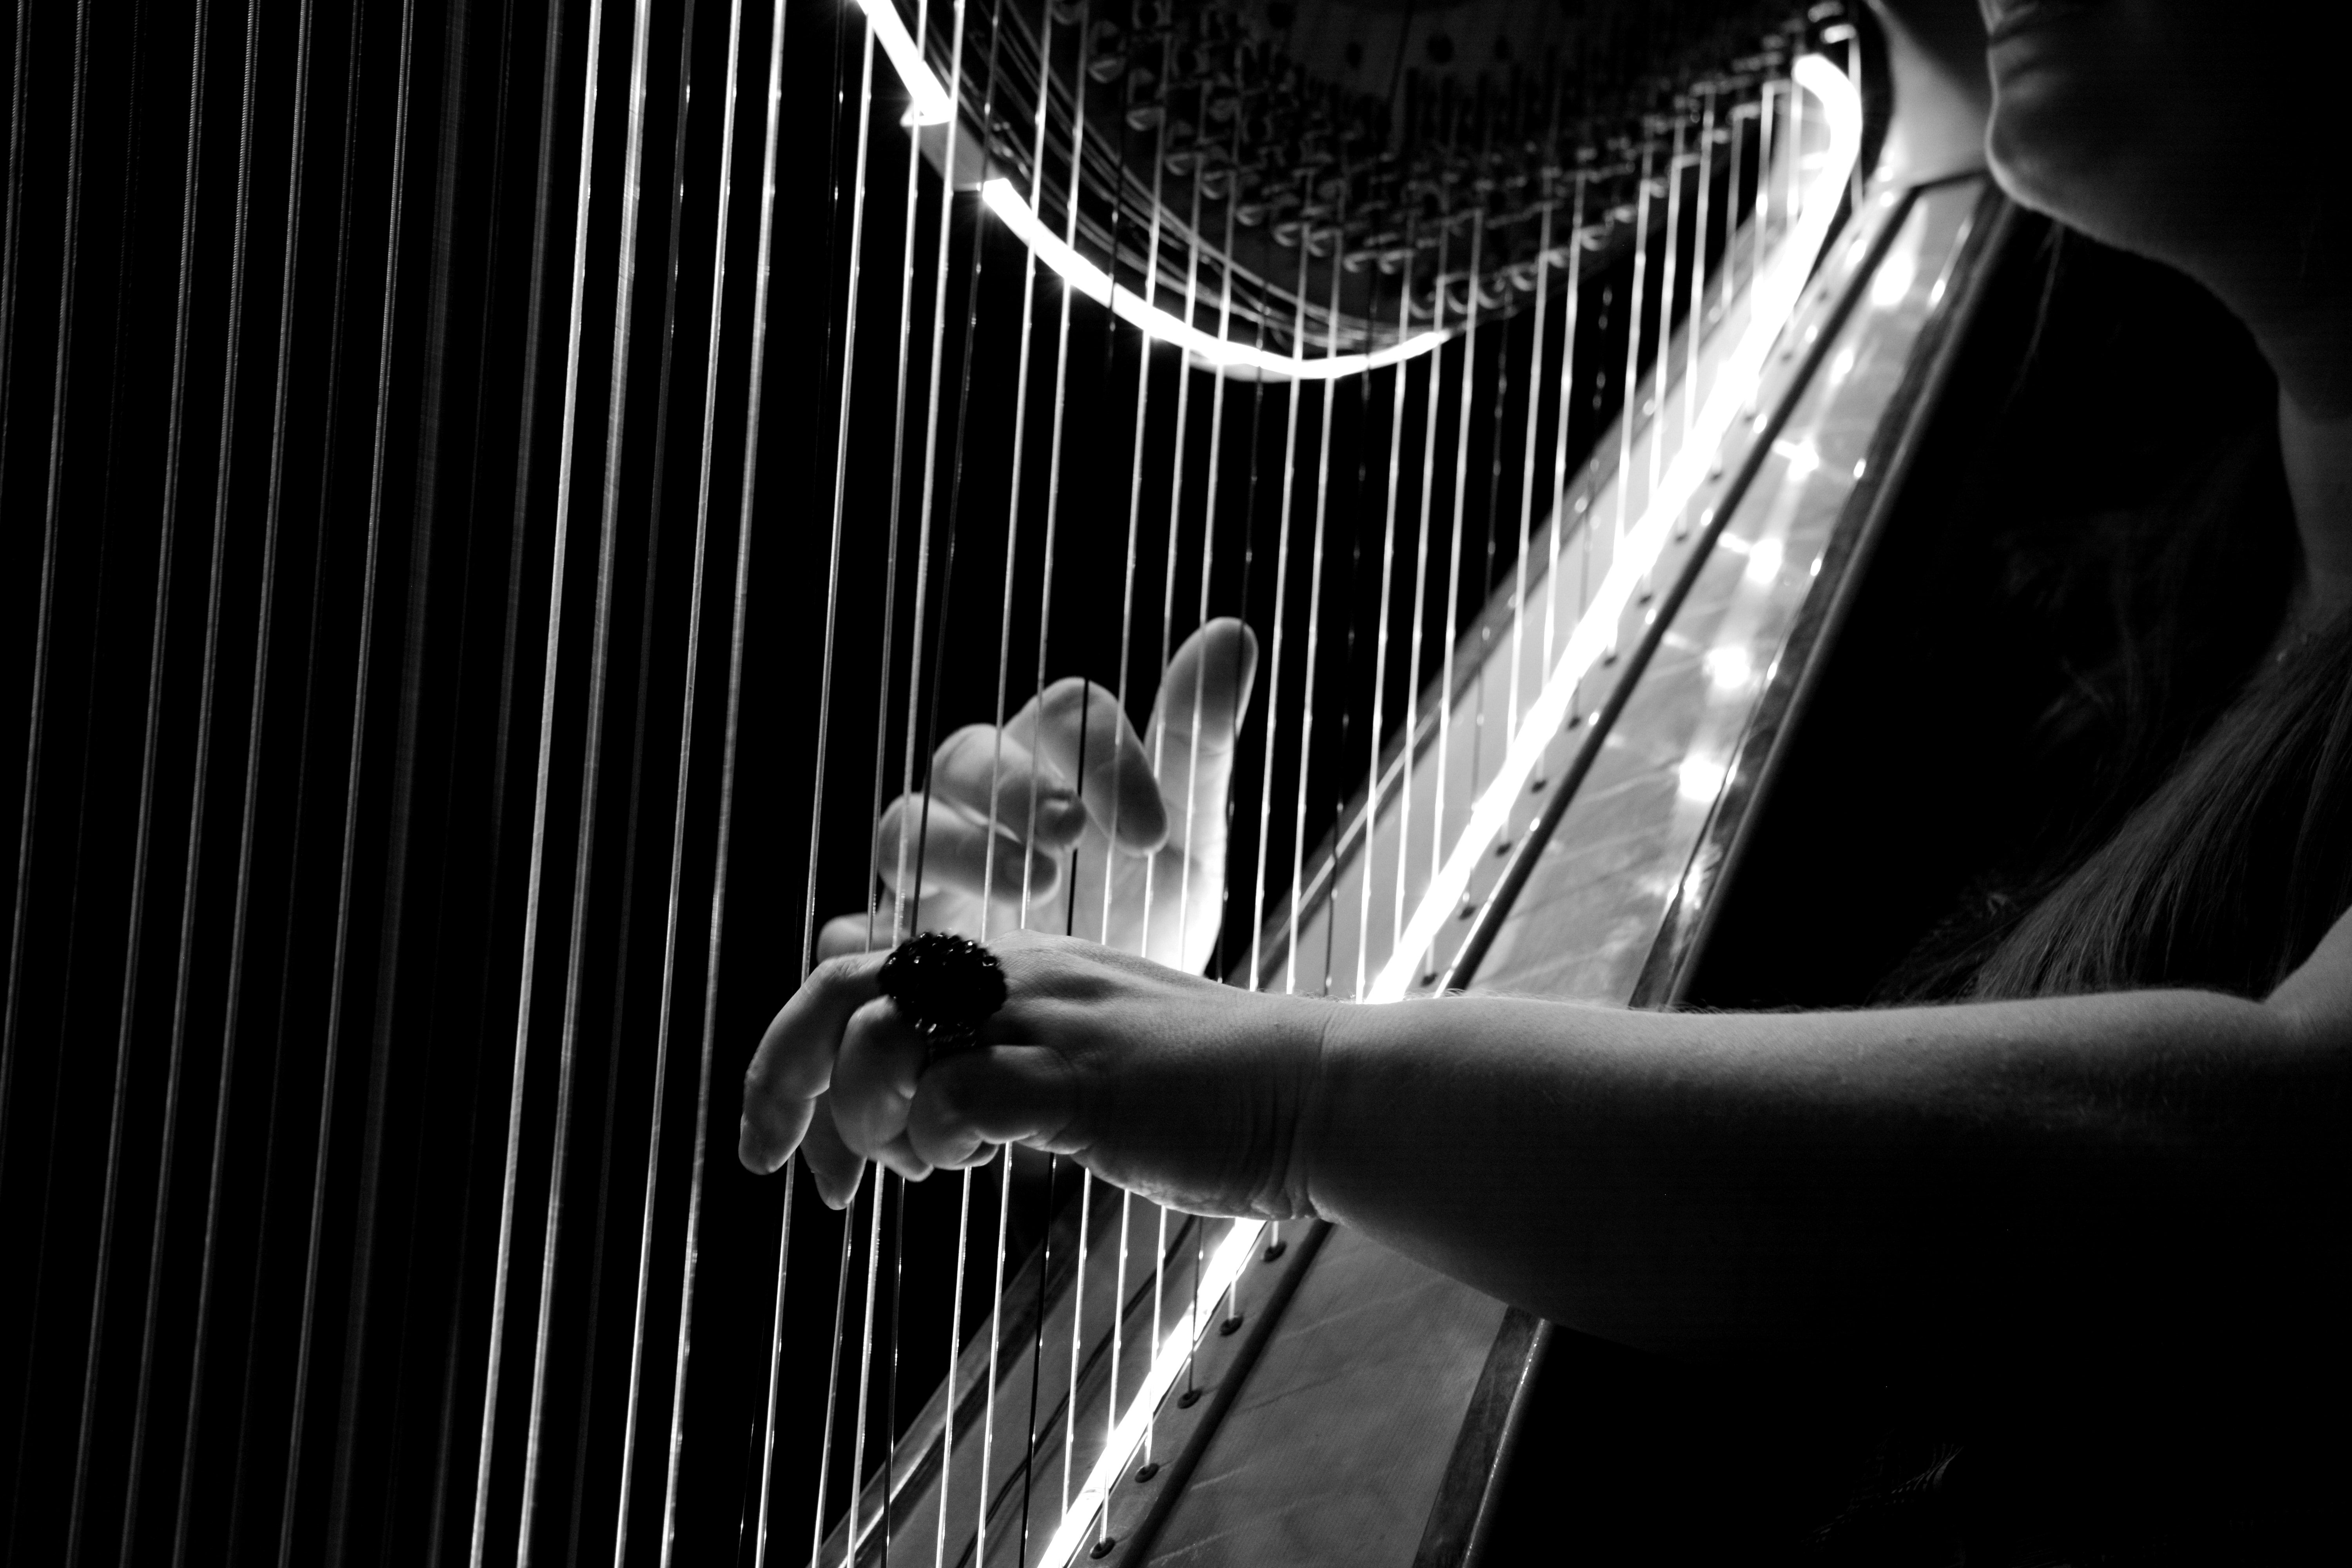 grayscale photo of harp free image